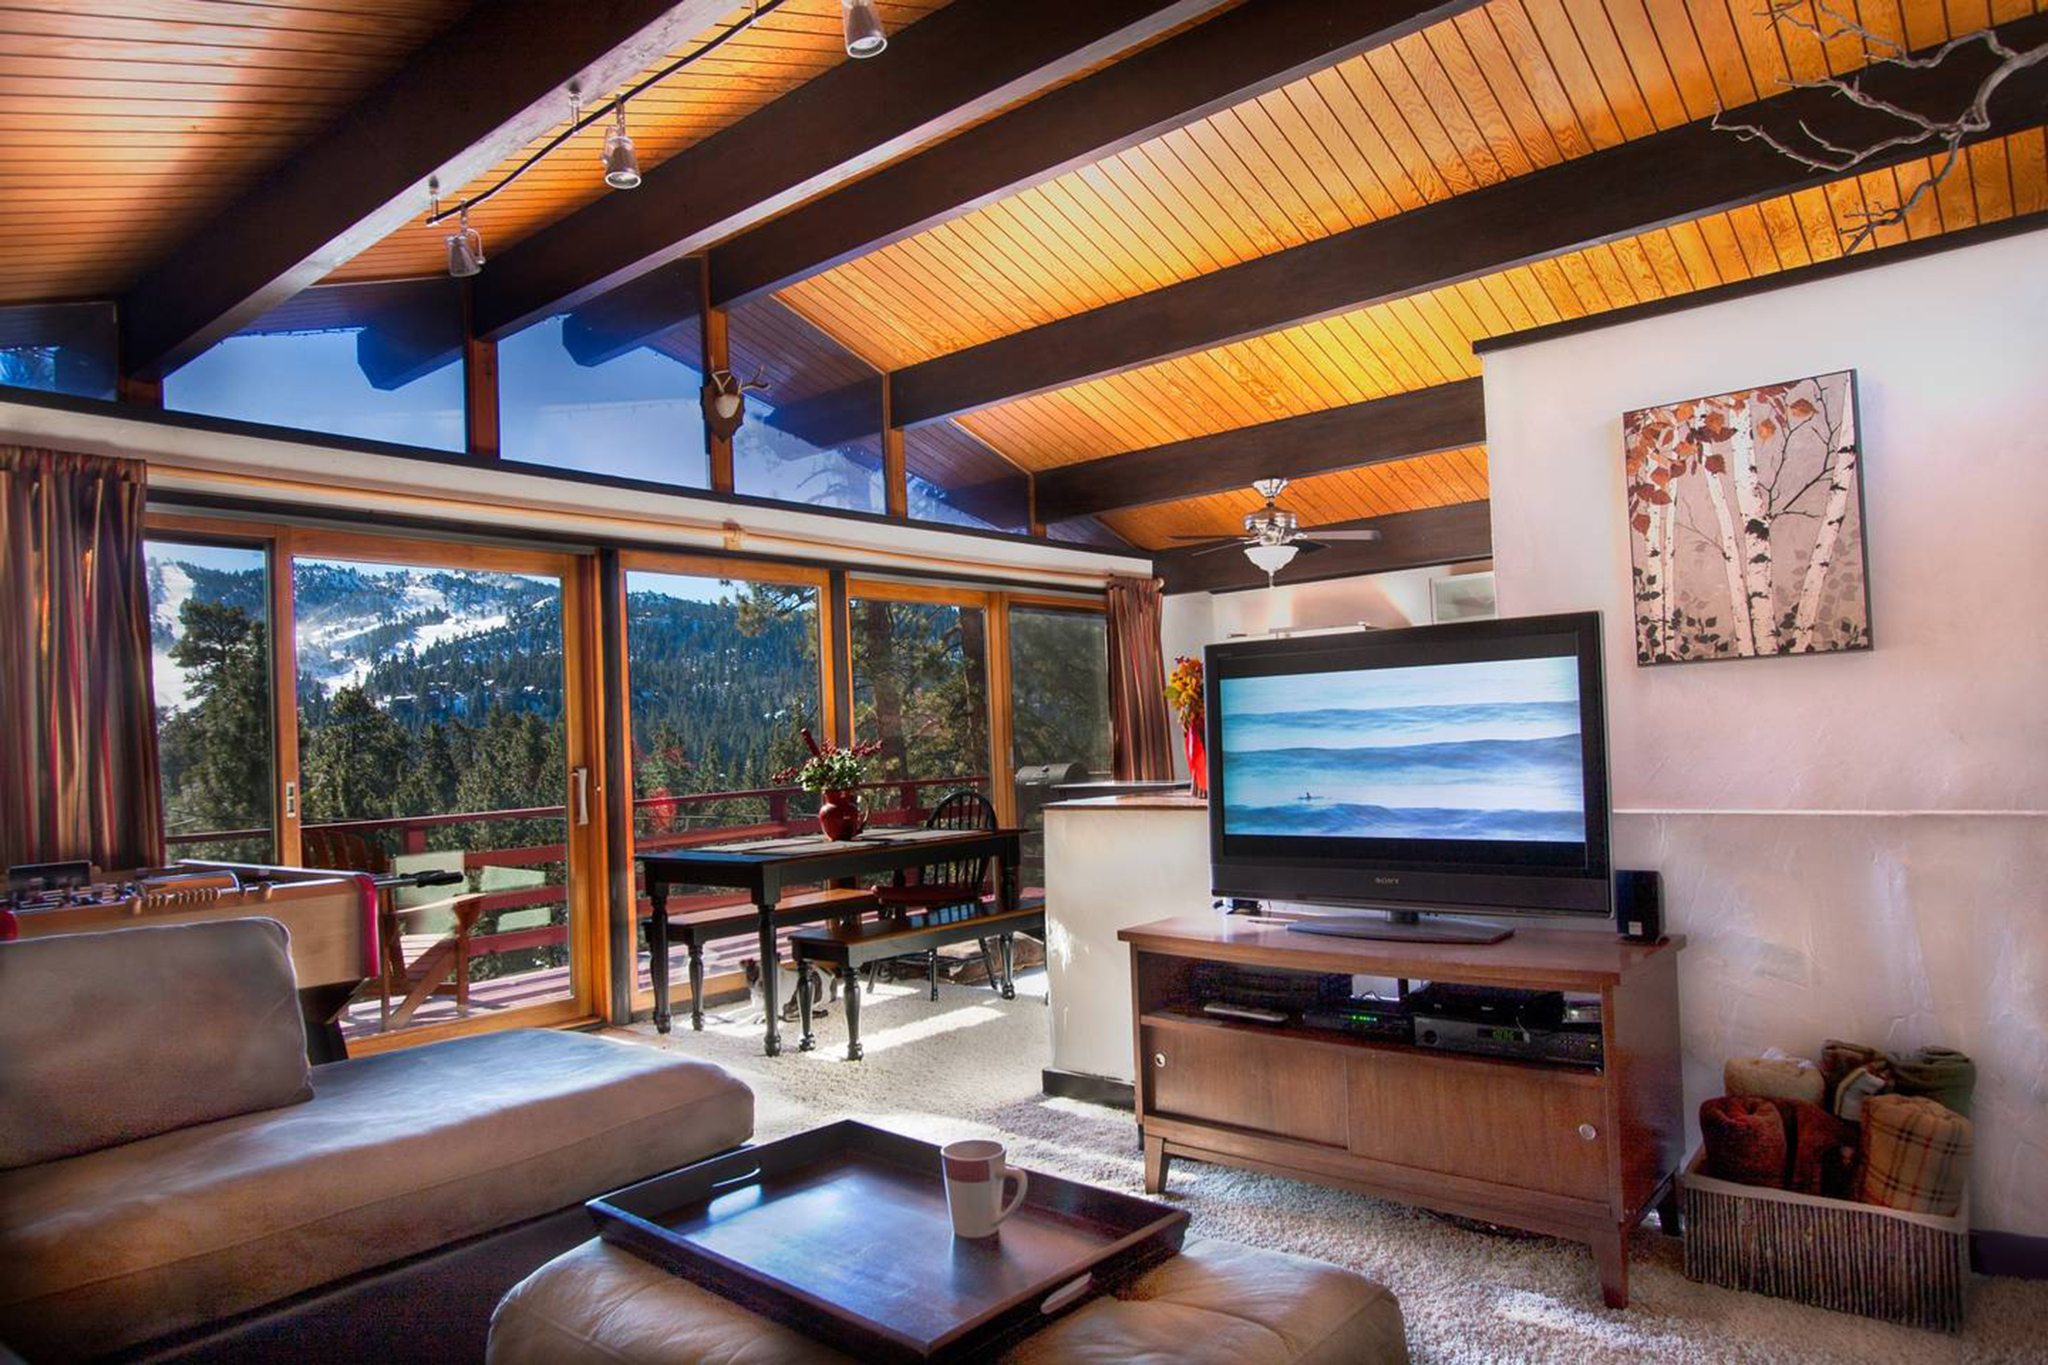 Treehaus Chalet in Big Bear Lake, CA